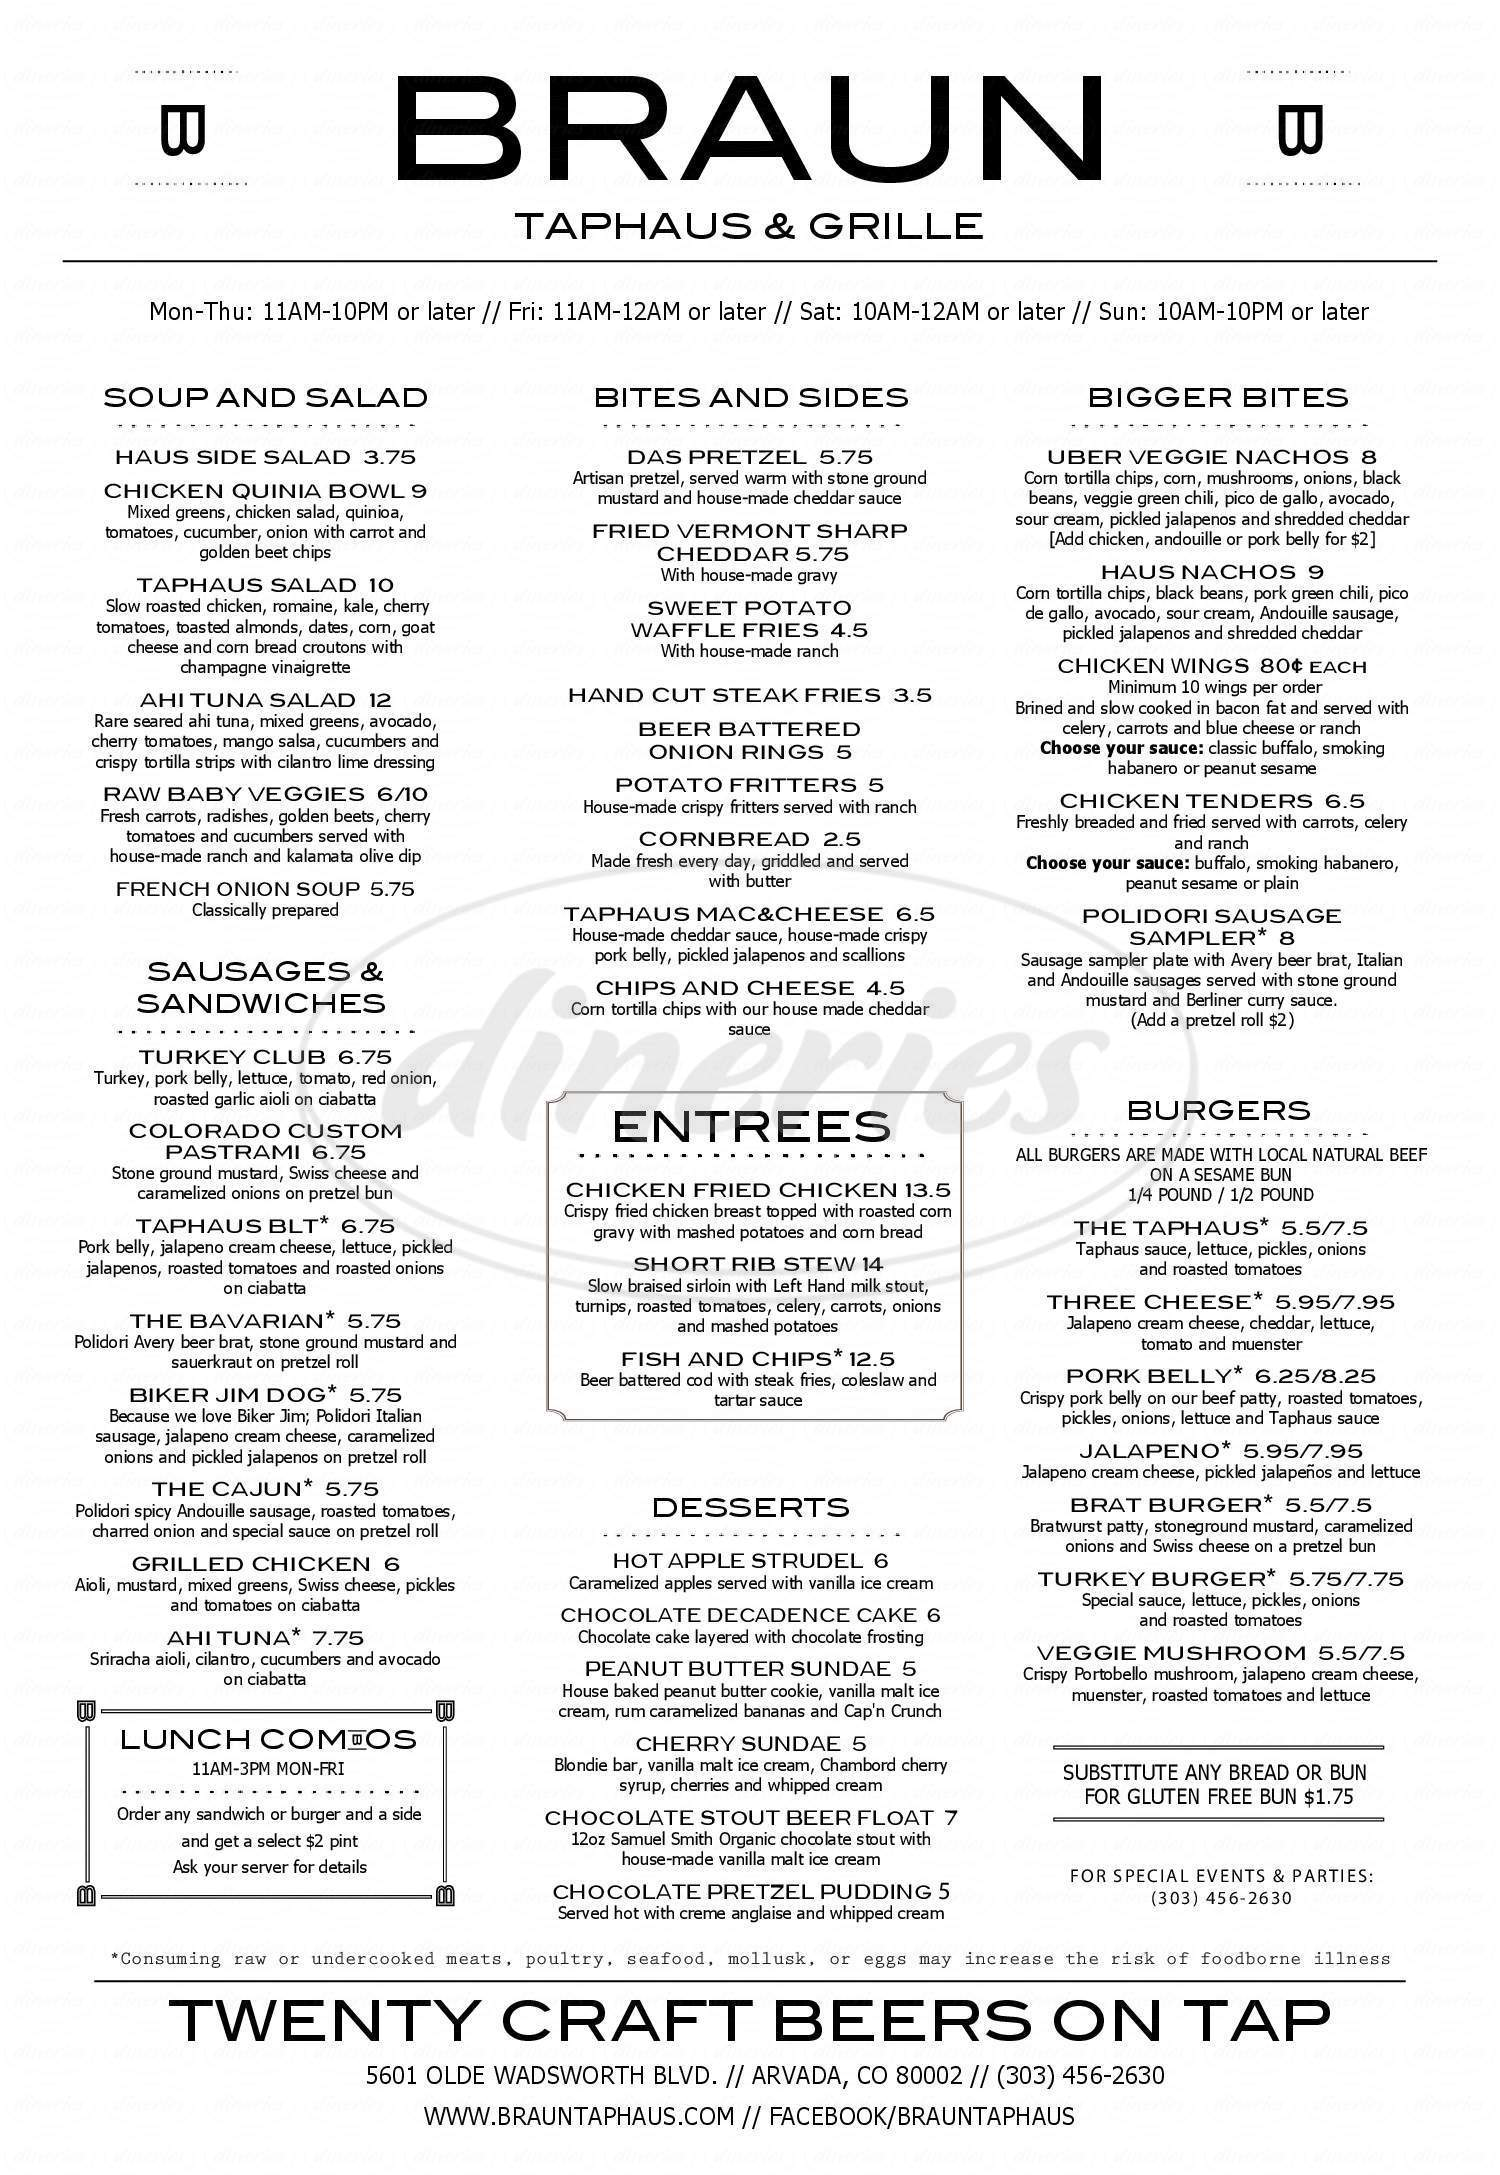 menu for Braun's Taphaus & Grille